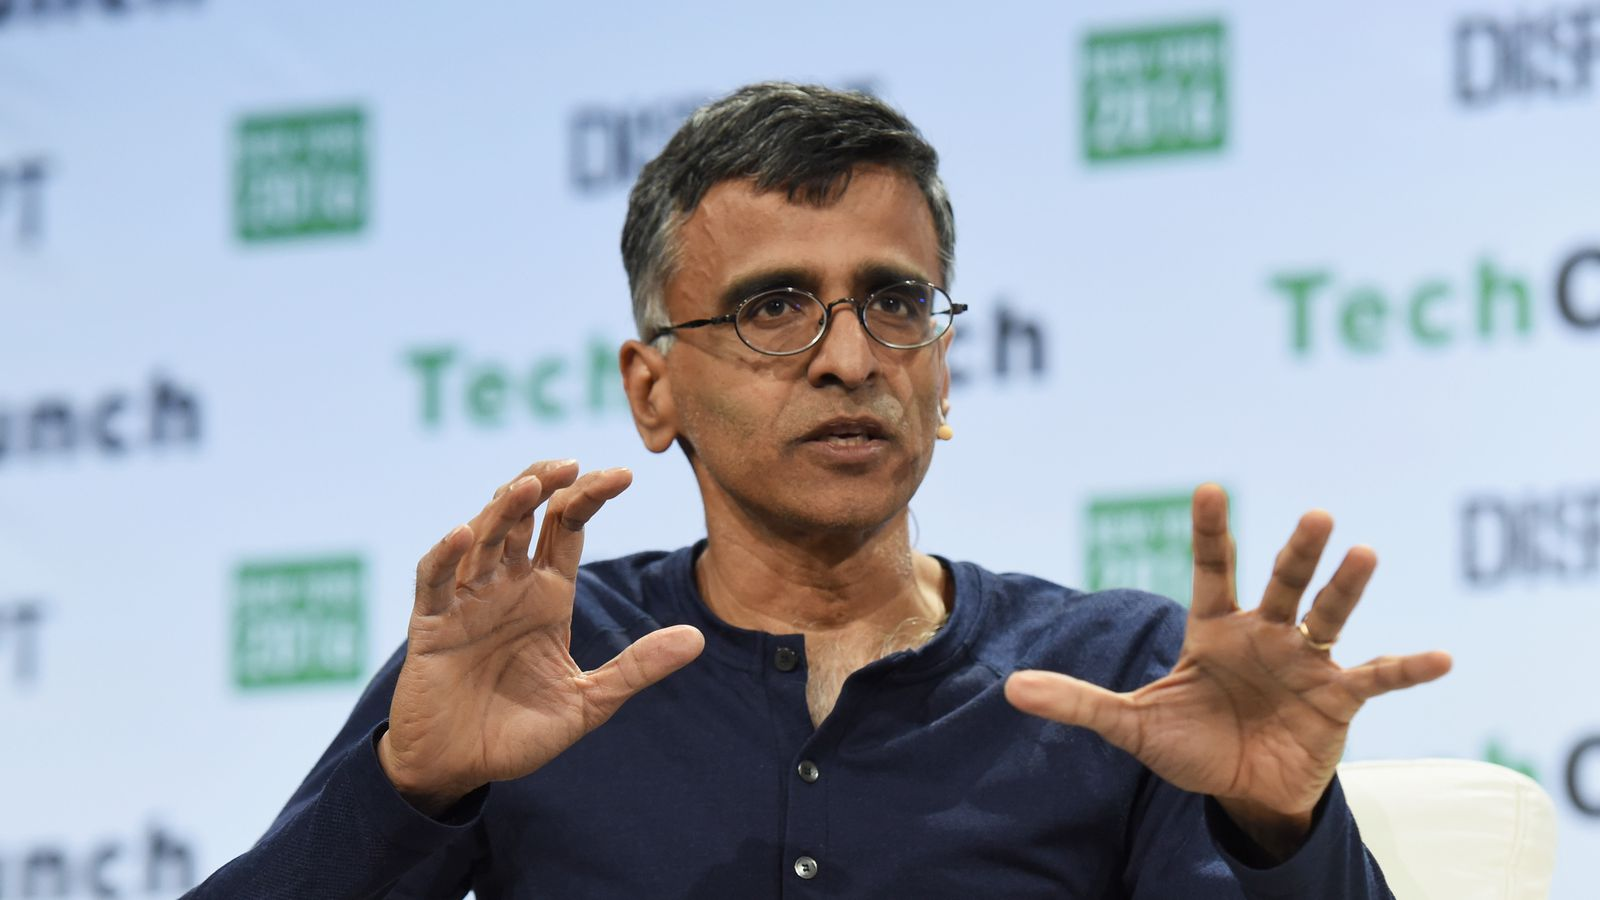 Google Assistant will make money from e-commerce